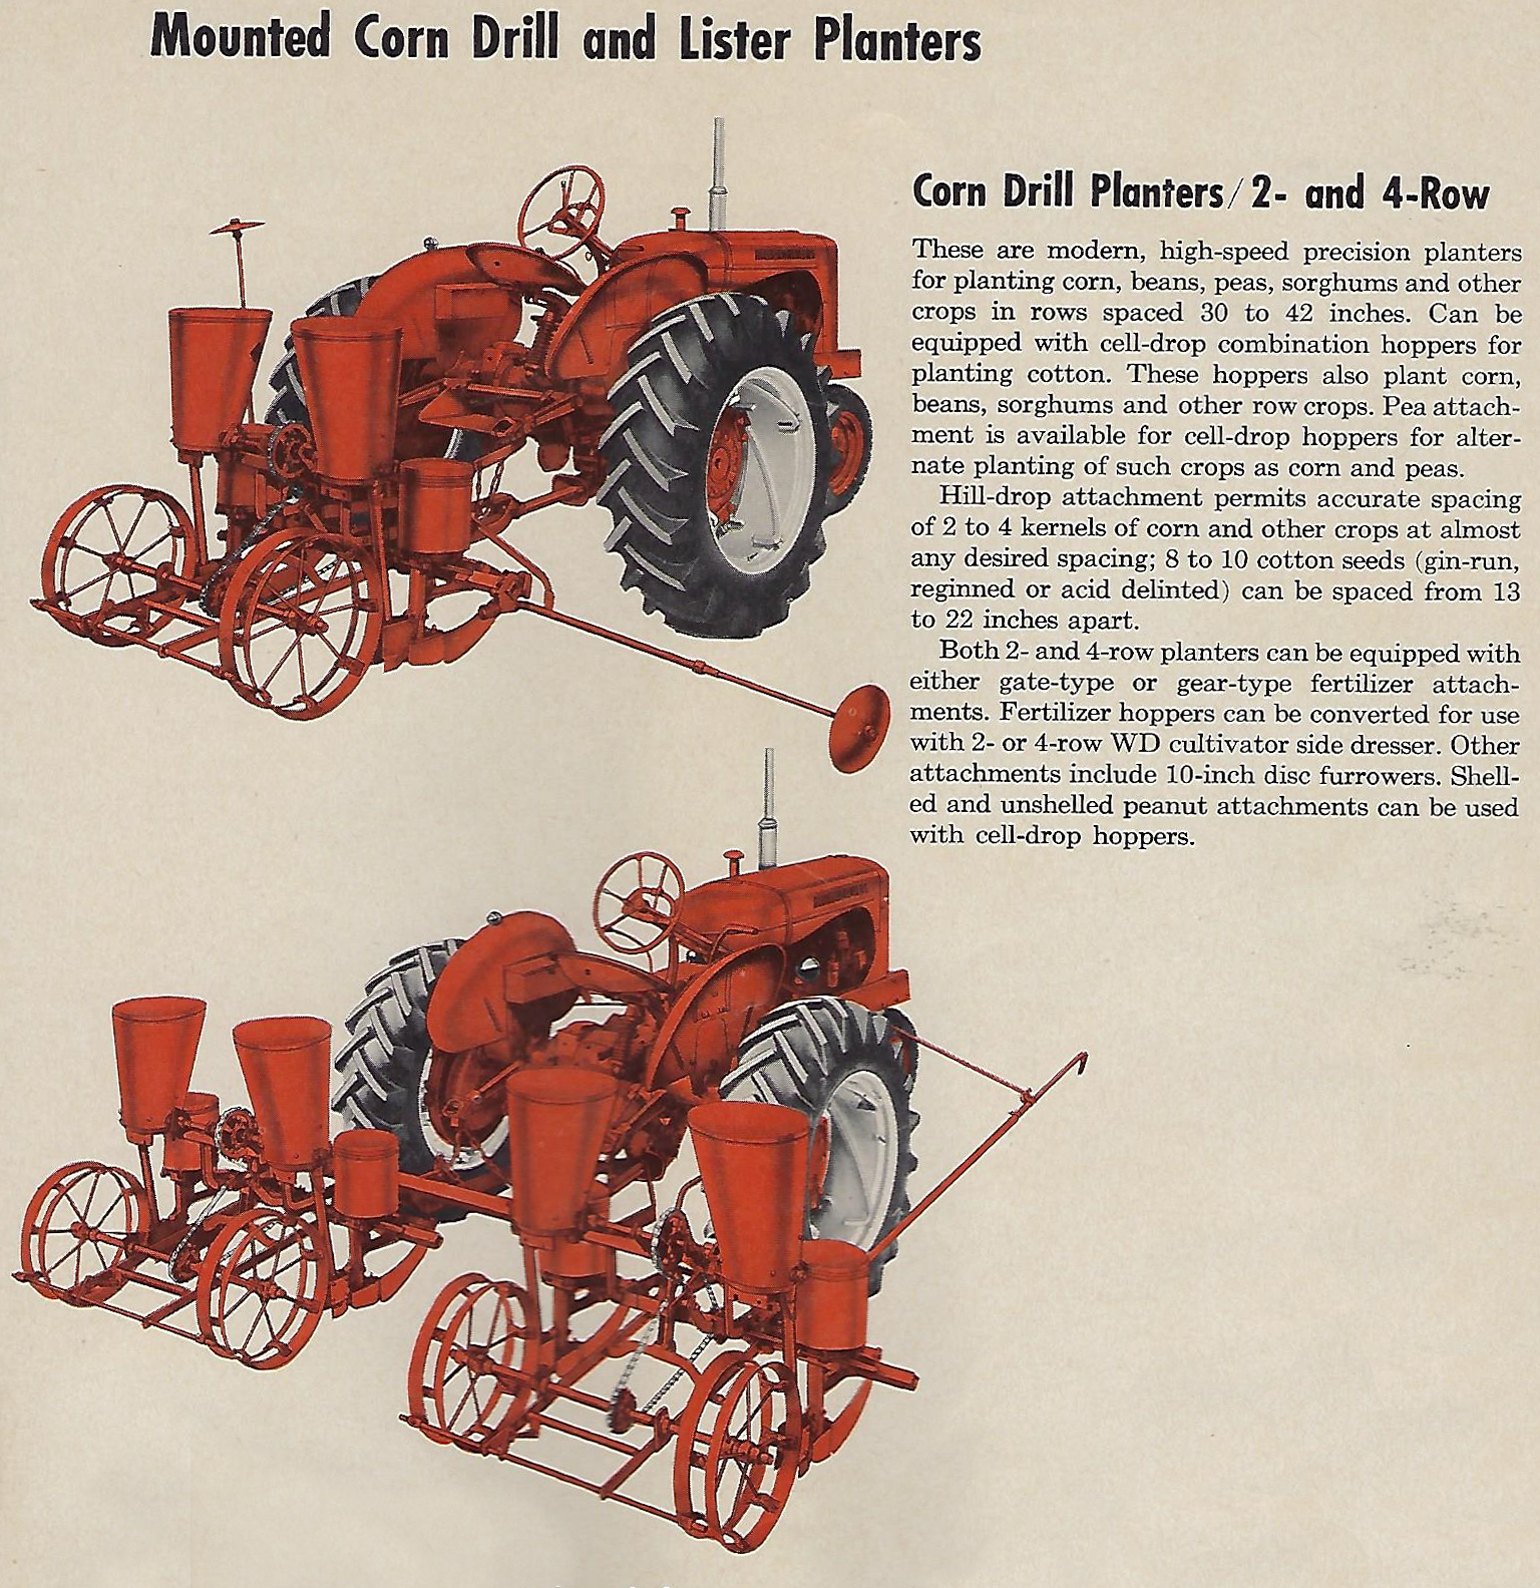 2 Allis-Chalmers corn 'drill' planters pictured in old brochure